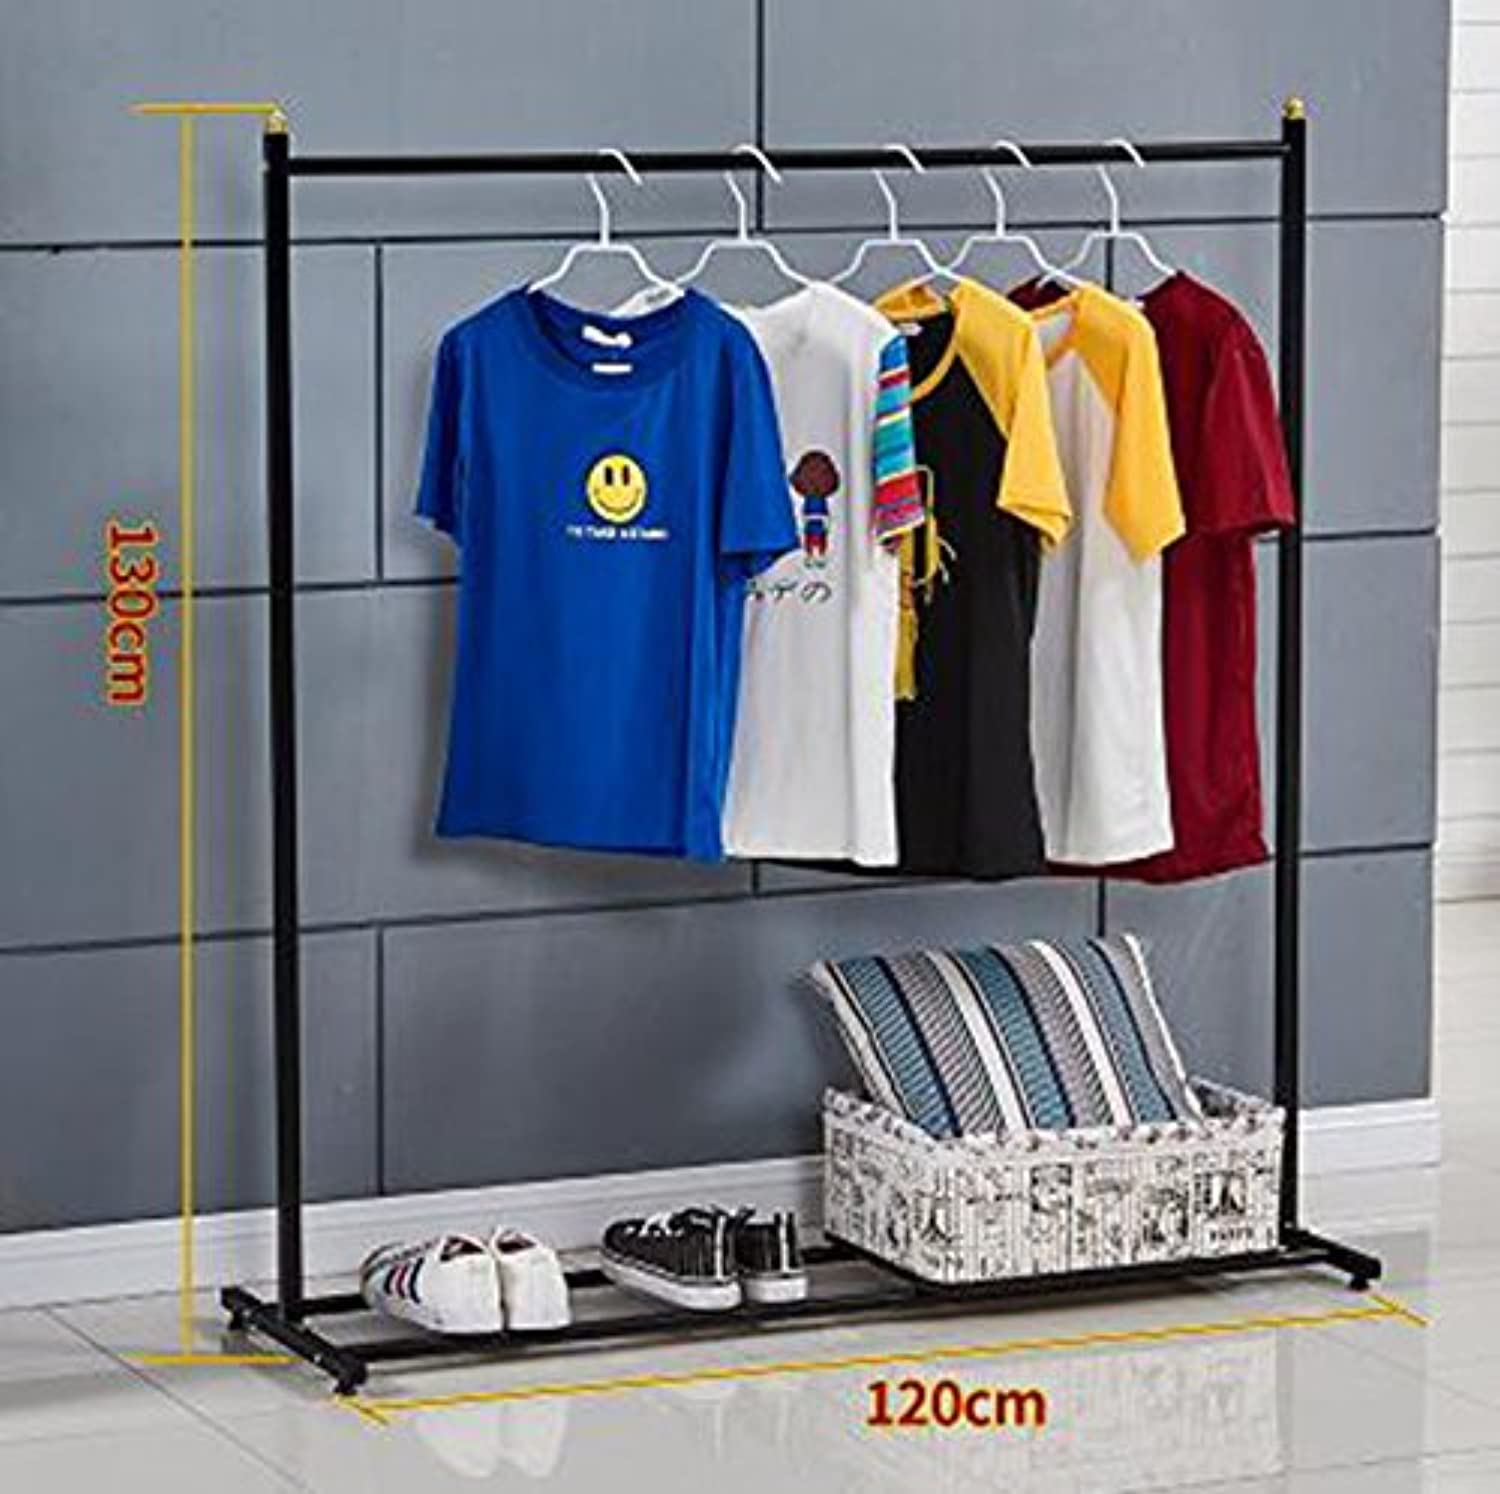 AIDELAI Coat Rack Clothes Racks Single-Pole Balconies Clothes Racks Household bedrooms Floor Hangers Simple Interior Hangers Hanging Hanger (color   A3)